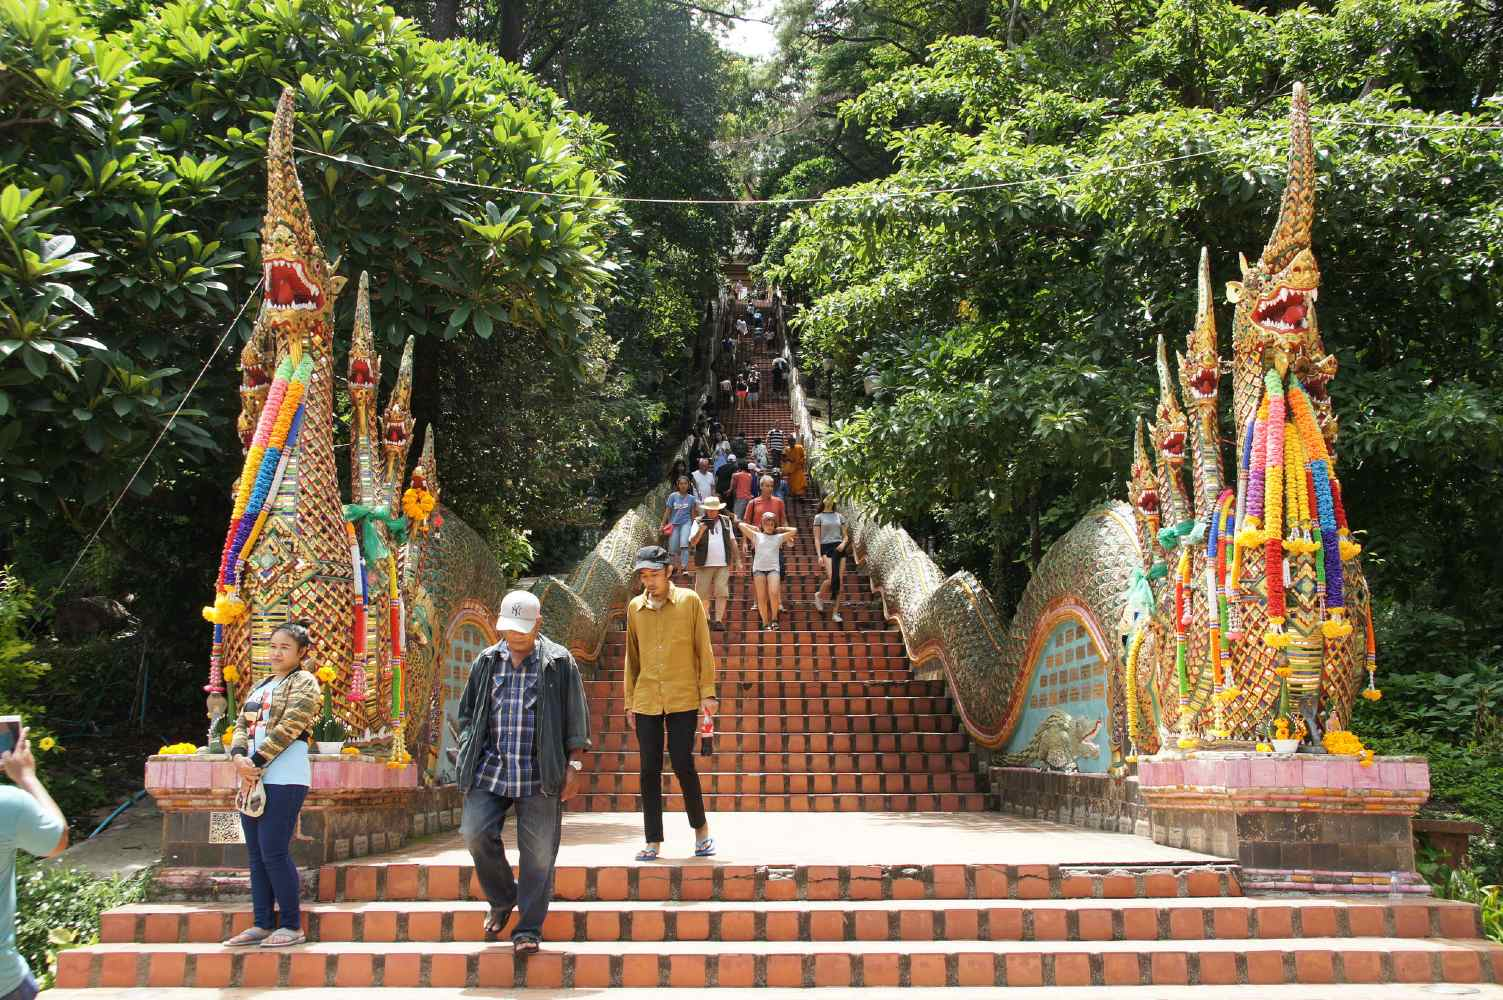 The stairs to the Wat Phrathat on the Doi Suthep in Chiang Mai, Thailand